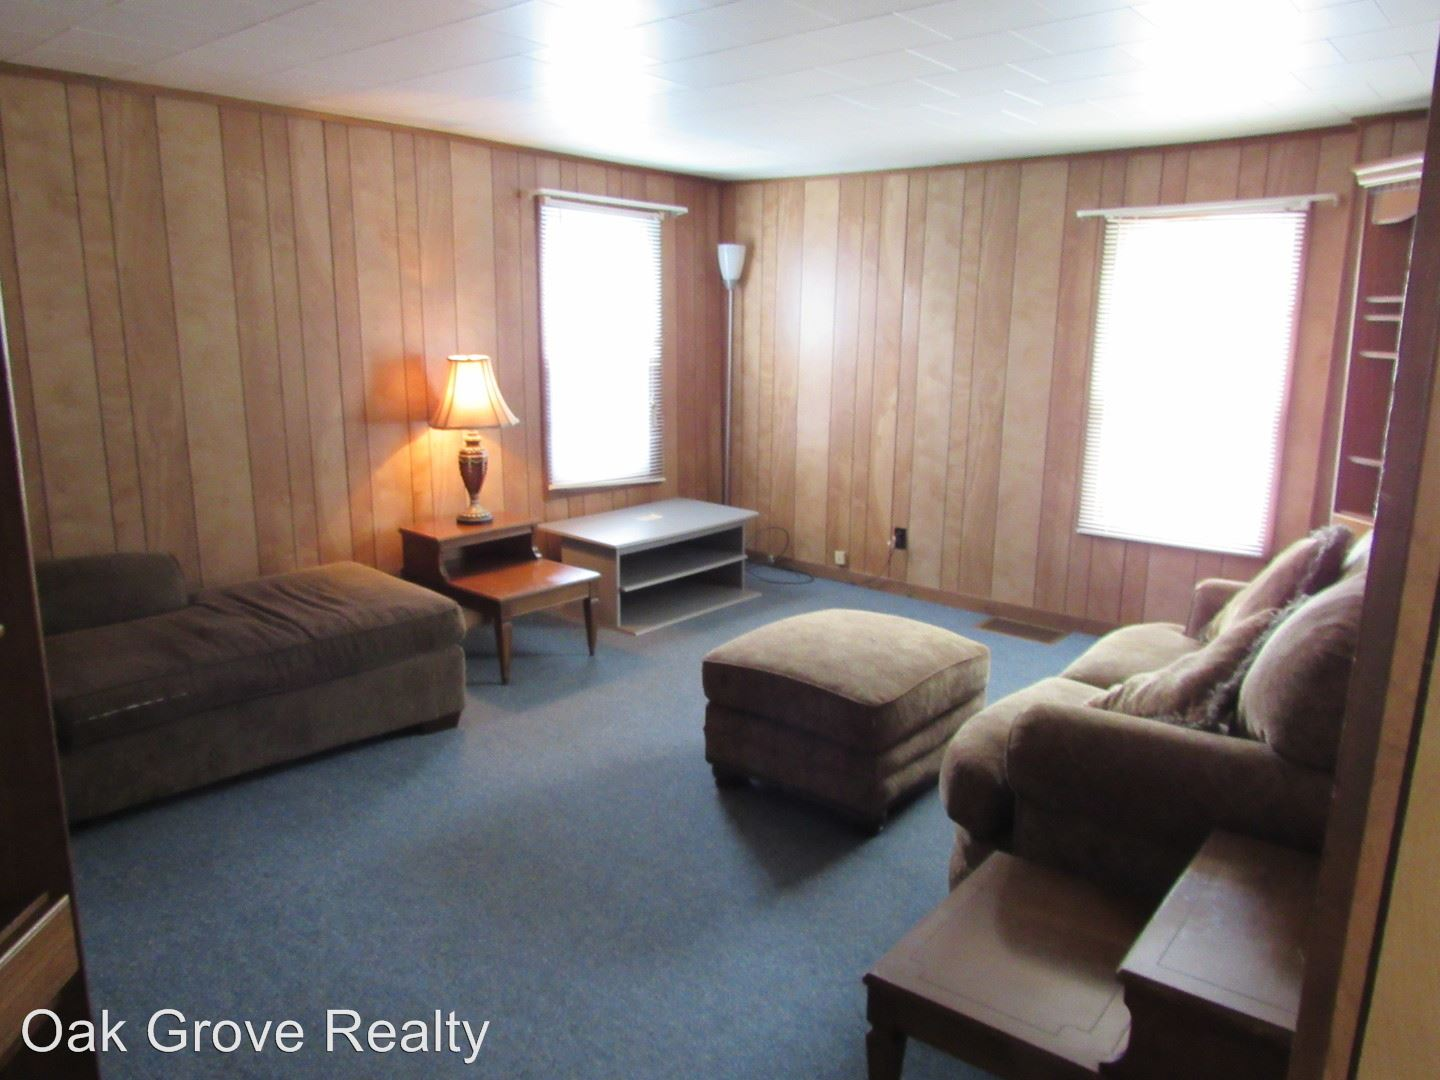 121 S. 8th St., Indiana, PA - $3,950 USD/ month